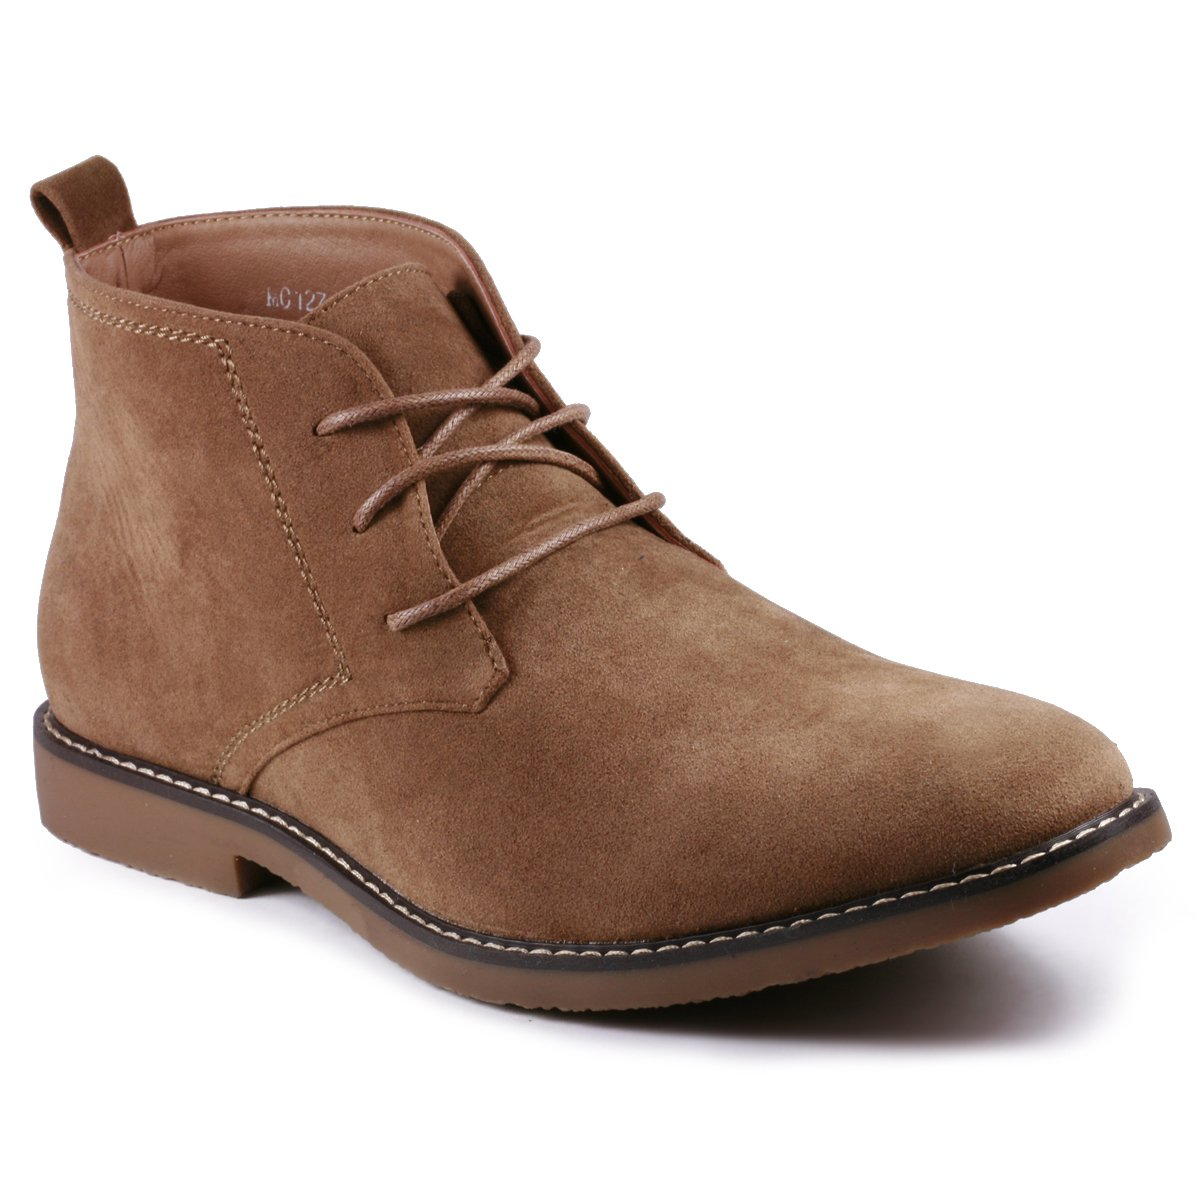 Metrocharm MC127 Men's Lace up Casual Fashion Ankle Chukka Boots (9 D(M) US, Taupe)